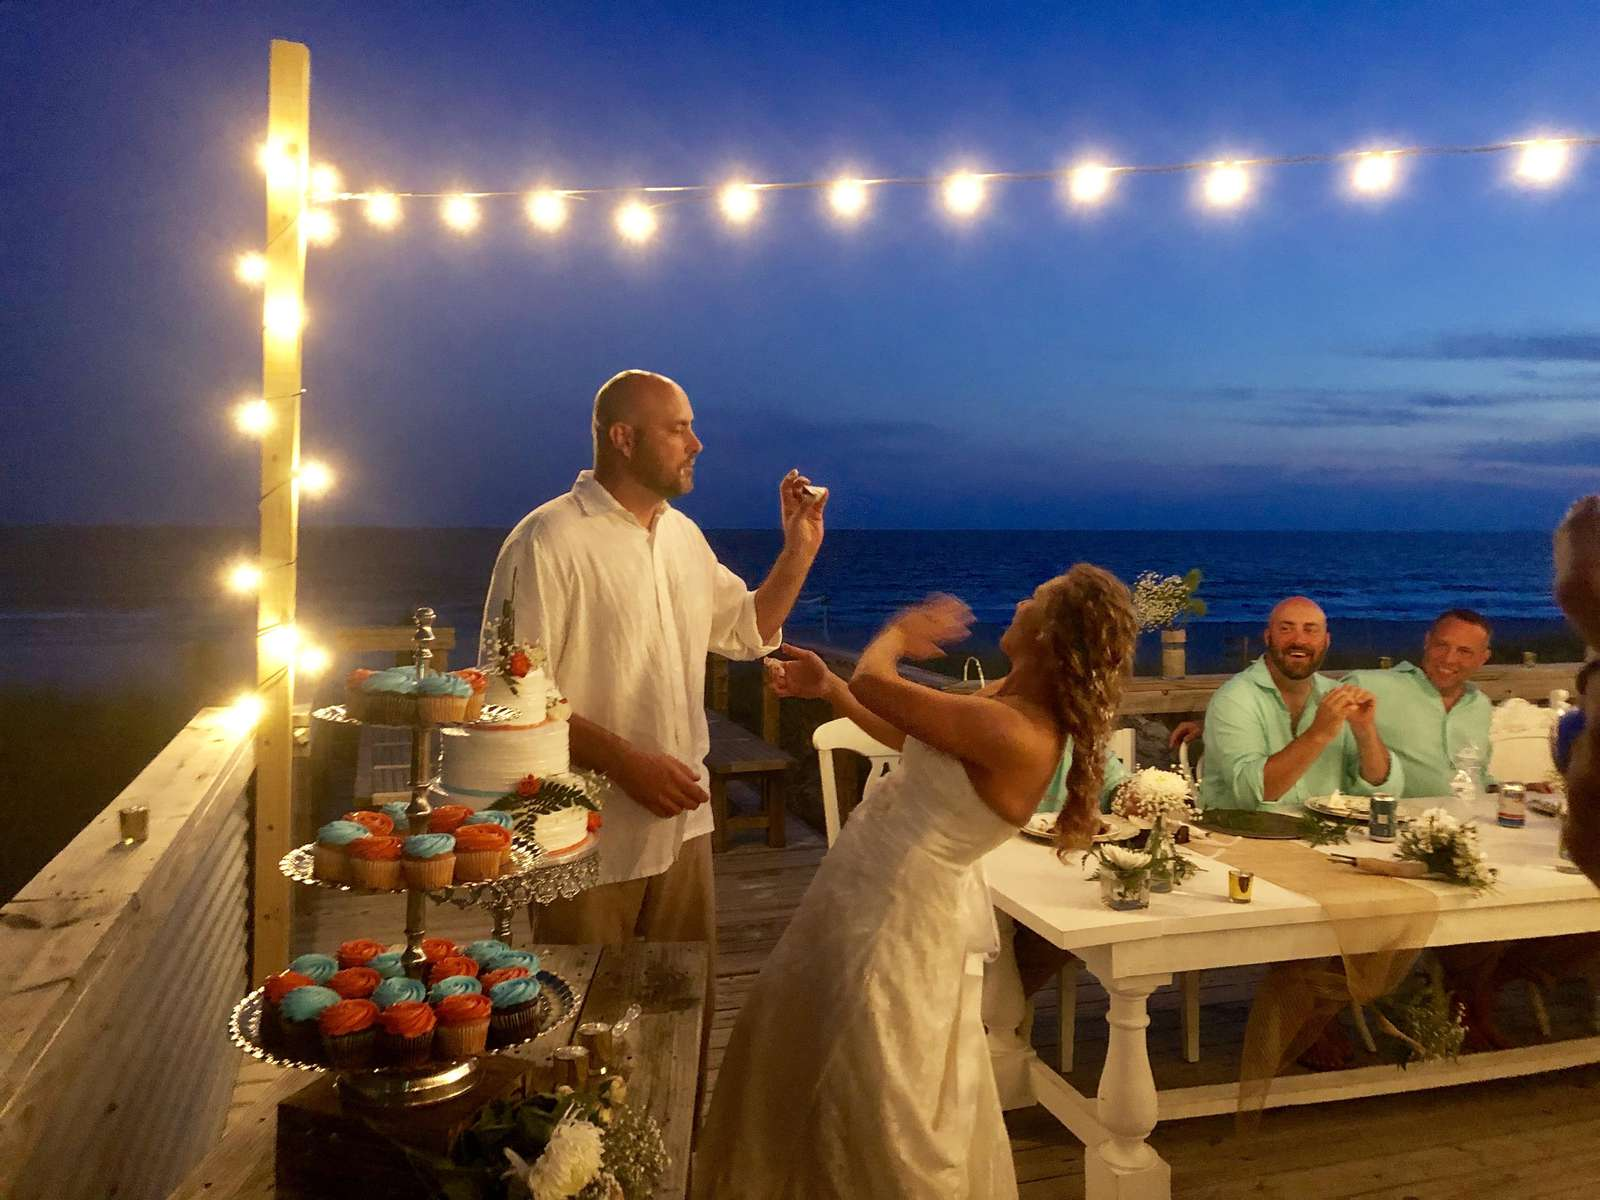 Wedding reception on the deck of the Quiet Lady